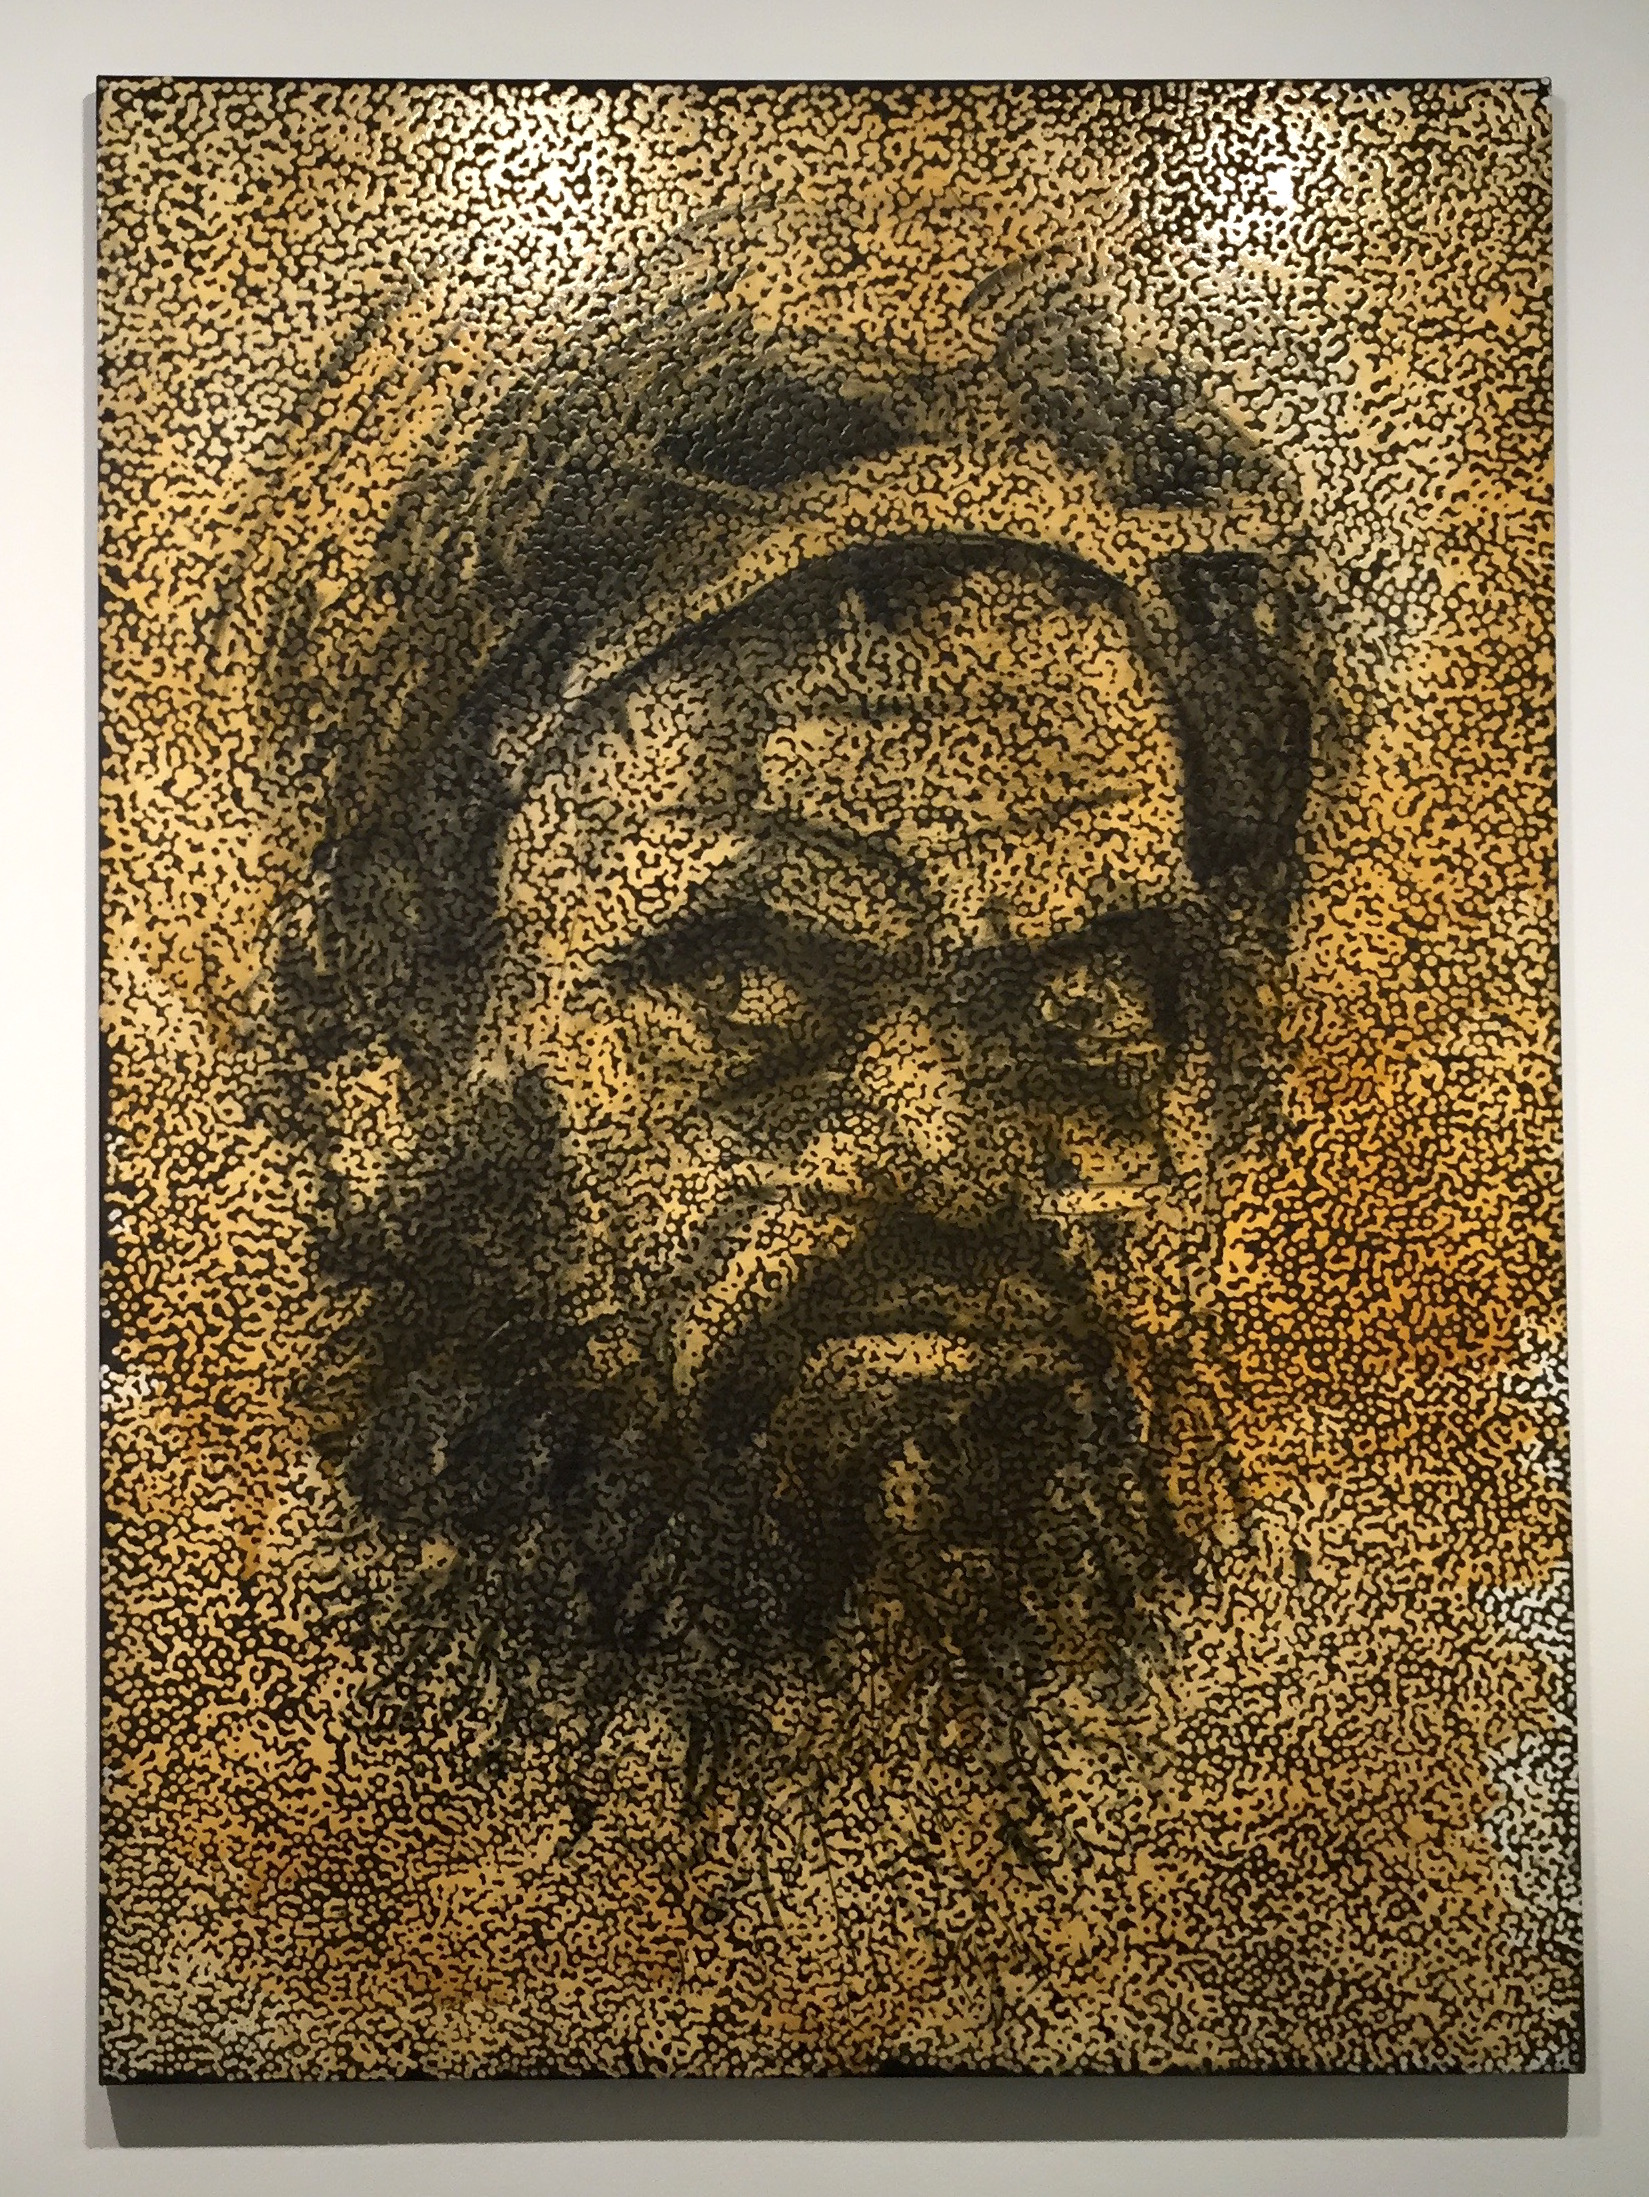 guided tours indigenous australian art mca collection